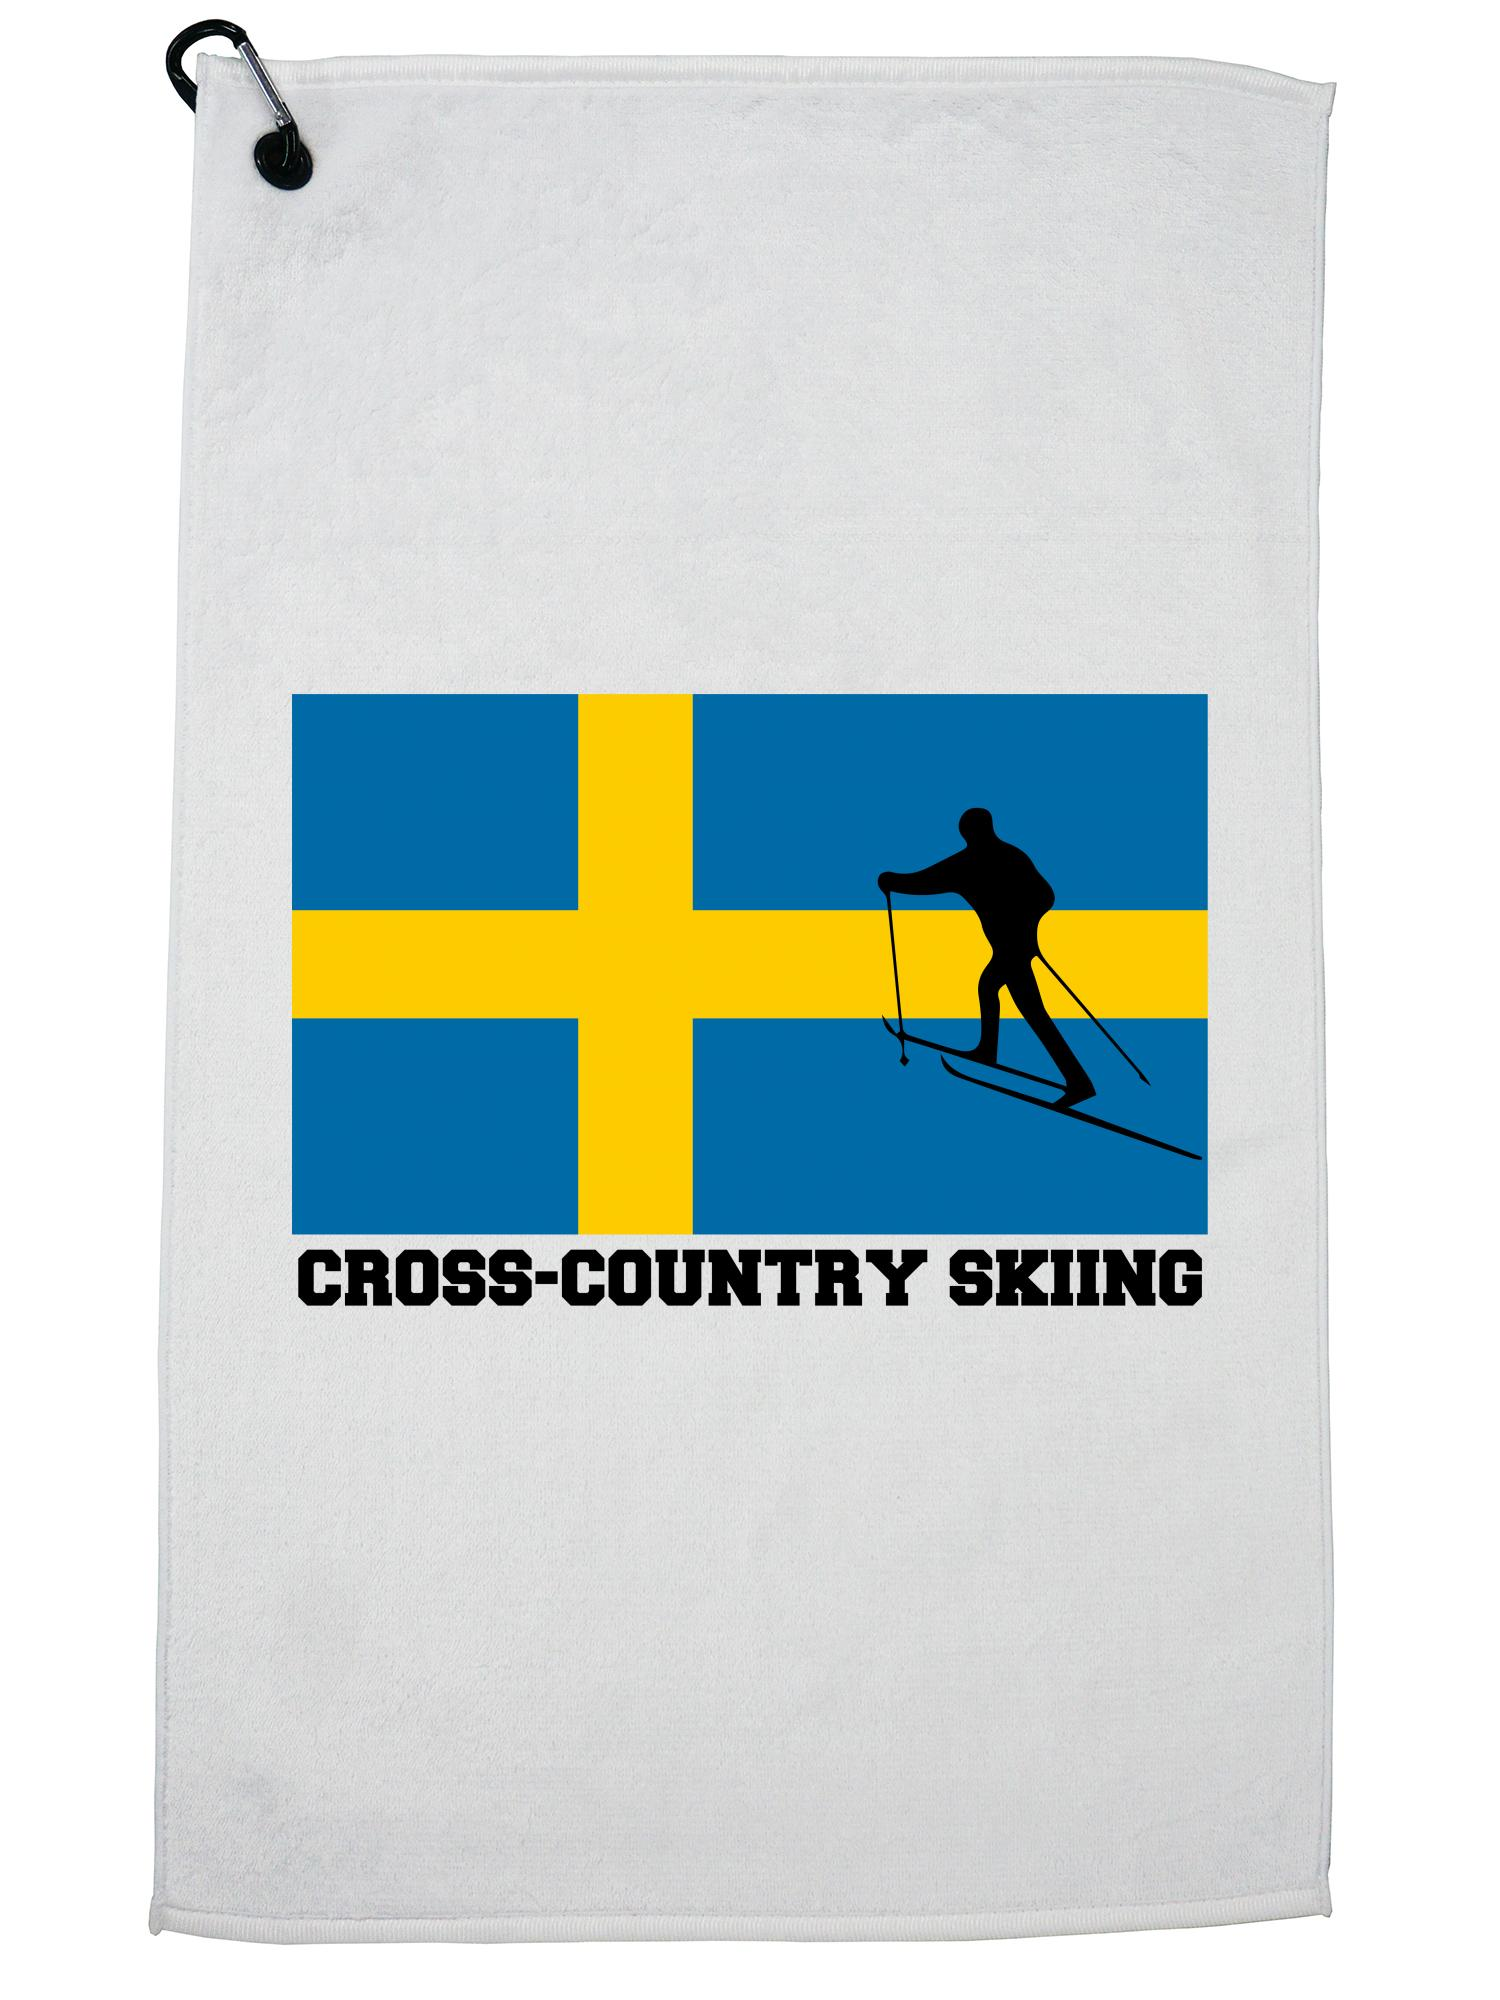 Sweden Olympic Cross-Country Skiing Flag Silhouette Golf Towel with Carabiner Clip by Hollywood Thread